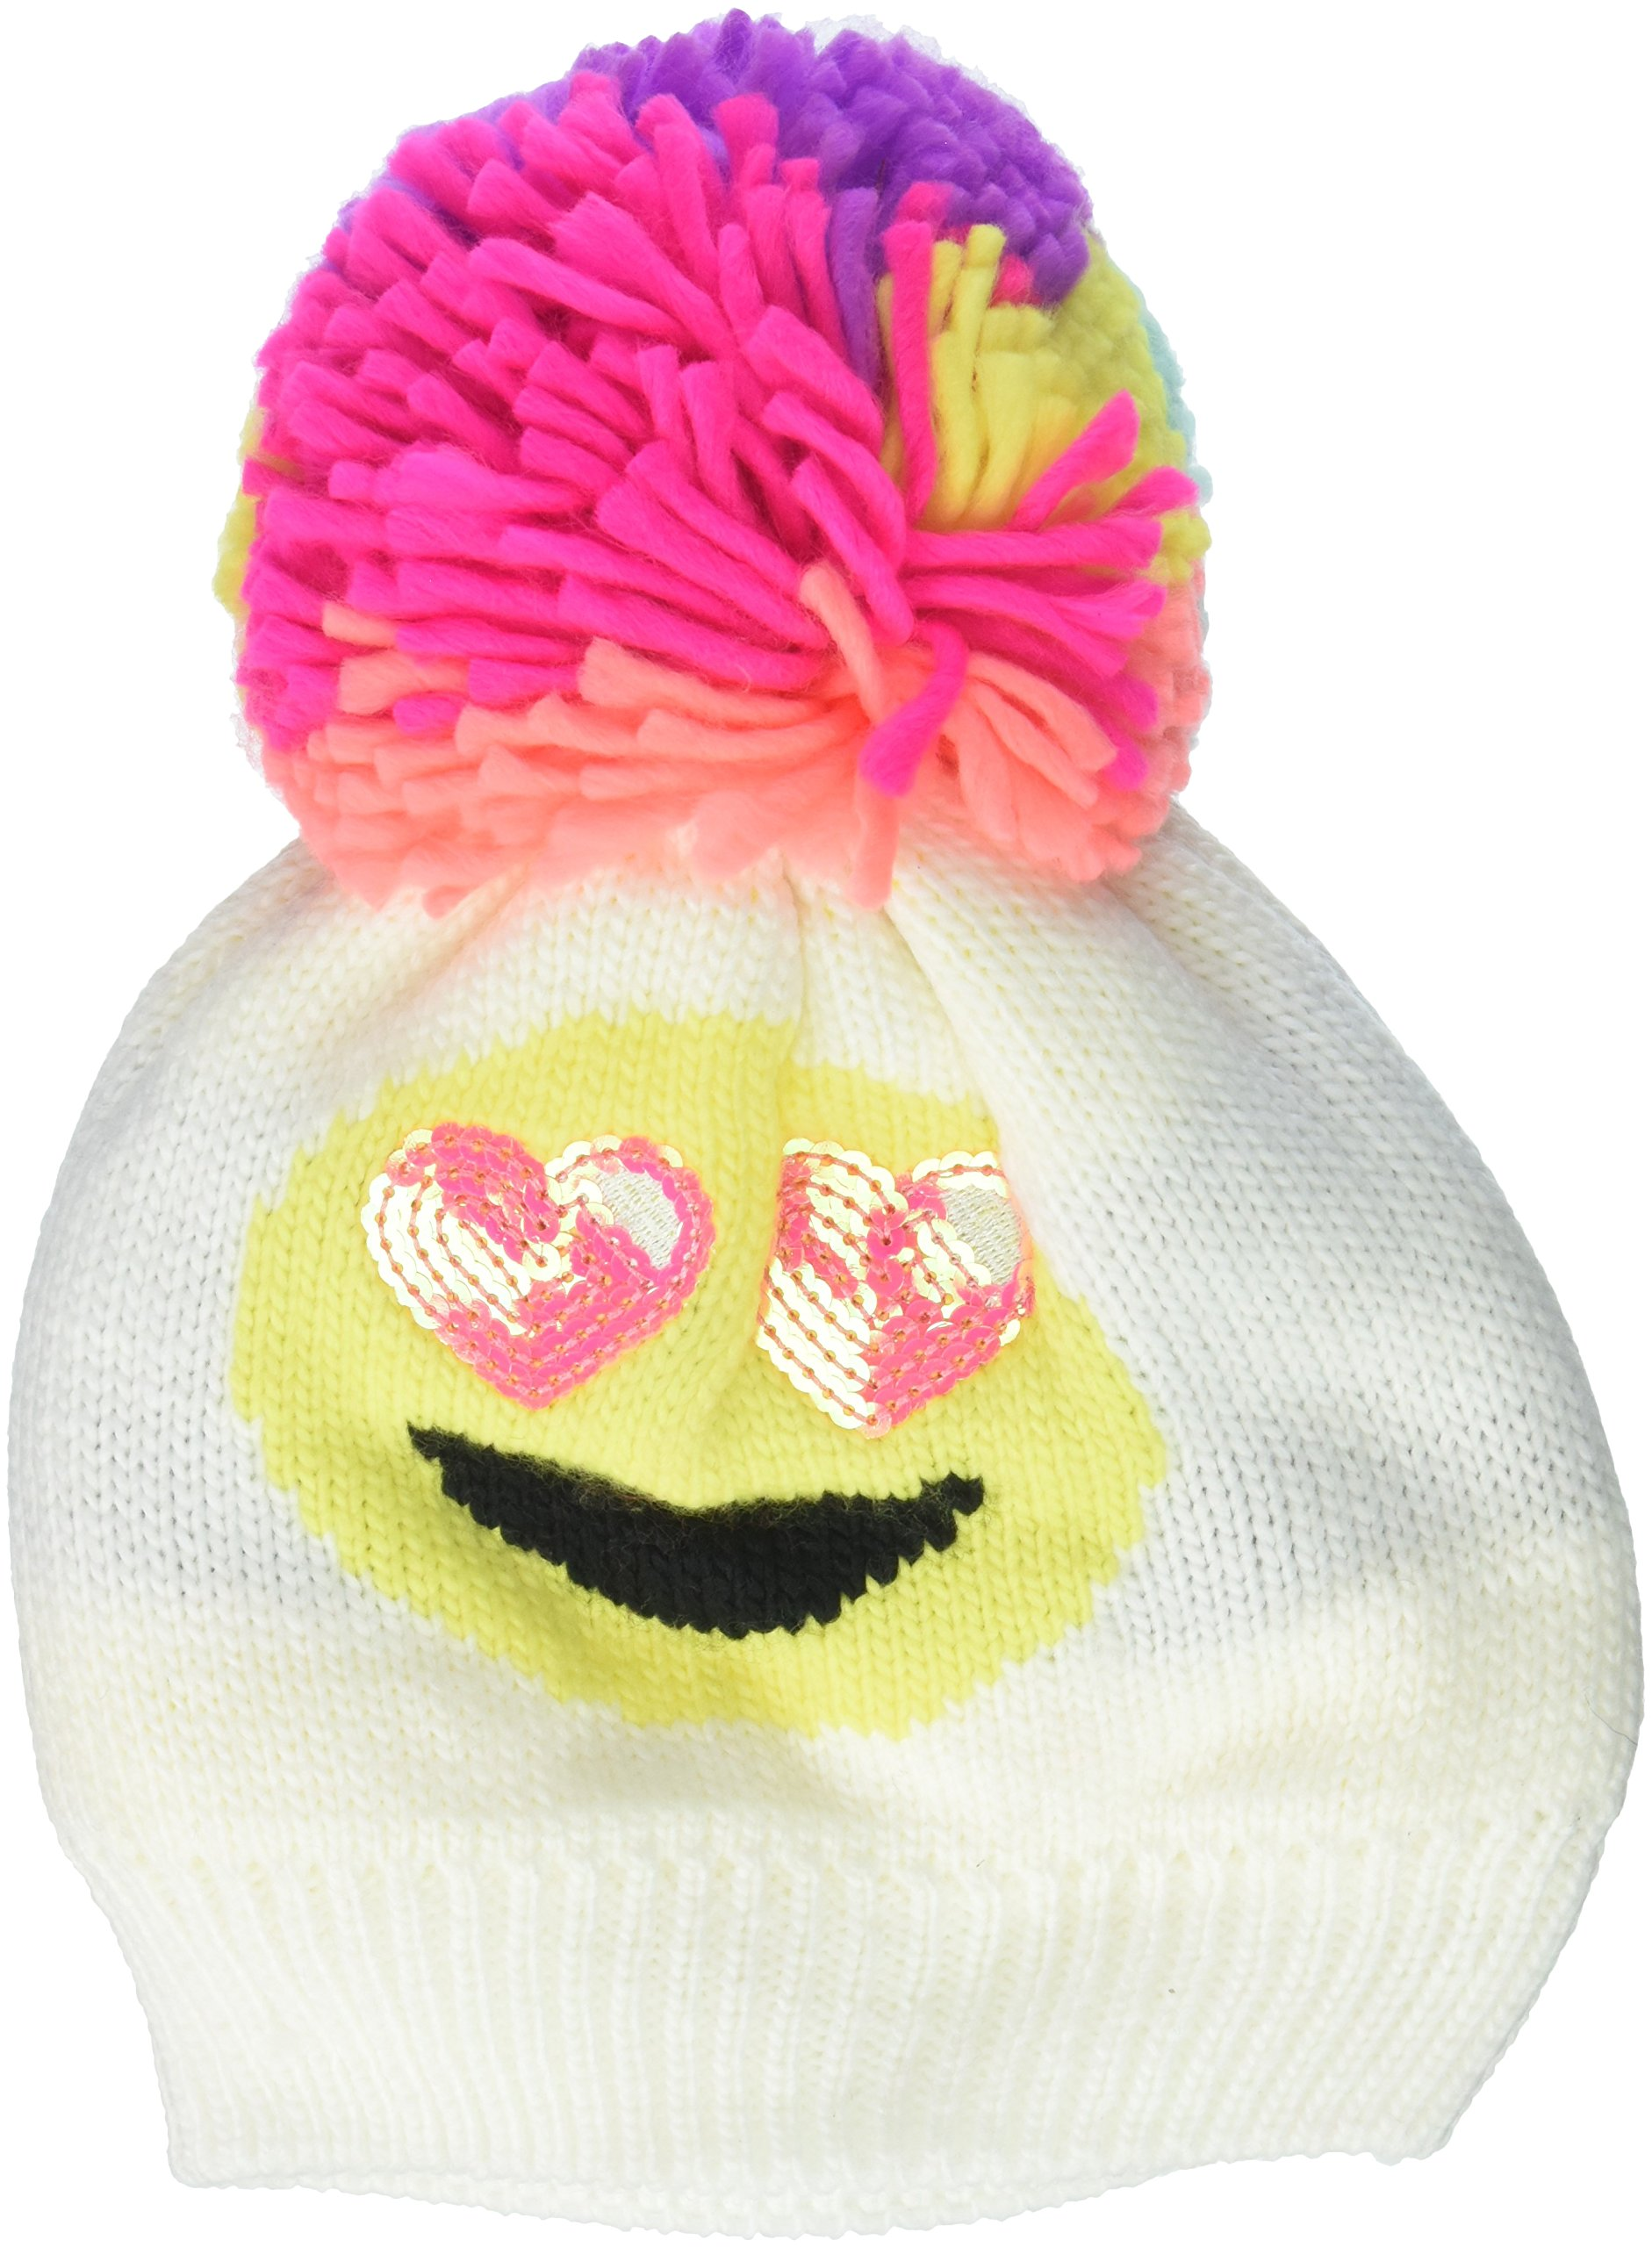 The Children's Place Girls' Toddler Graphic Beanie